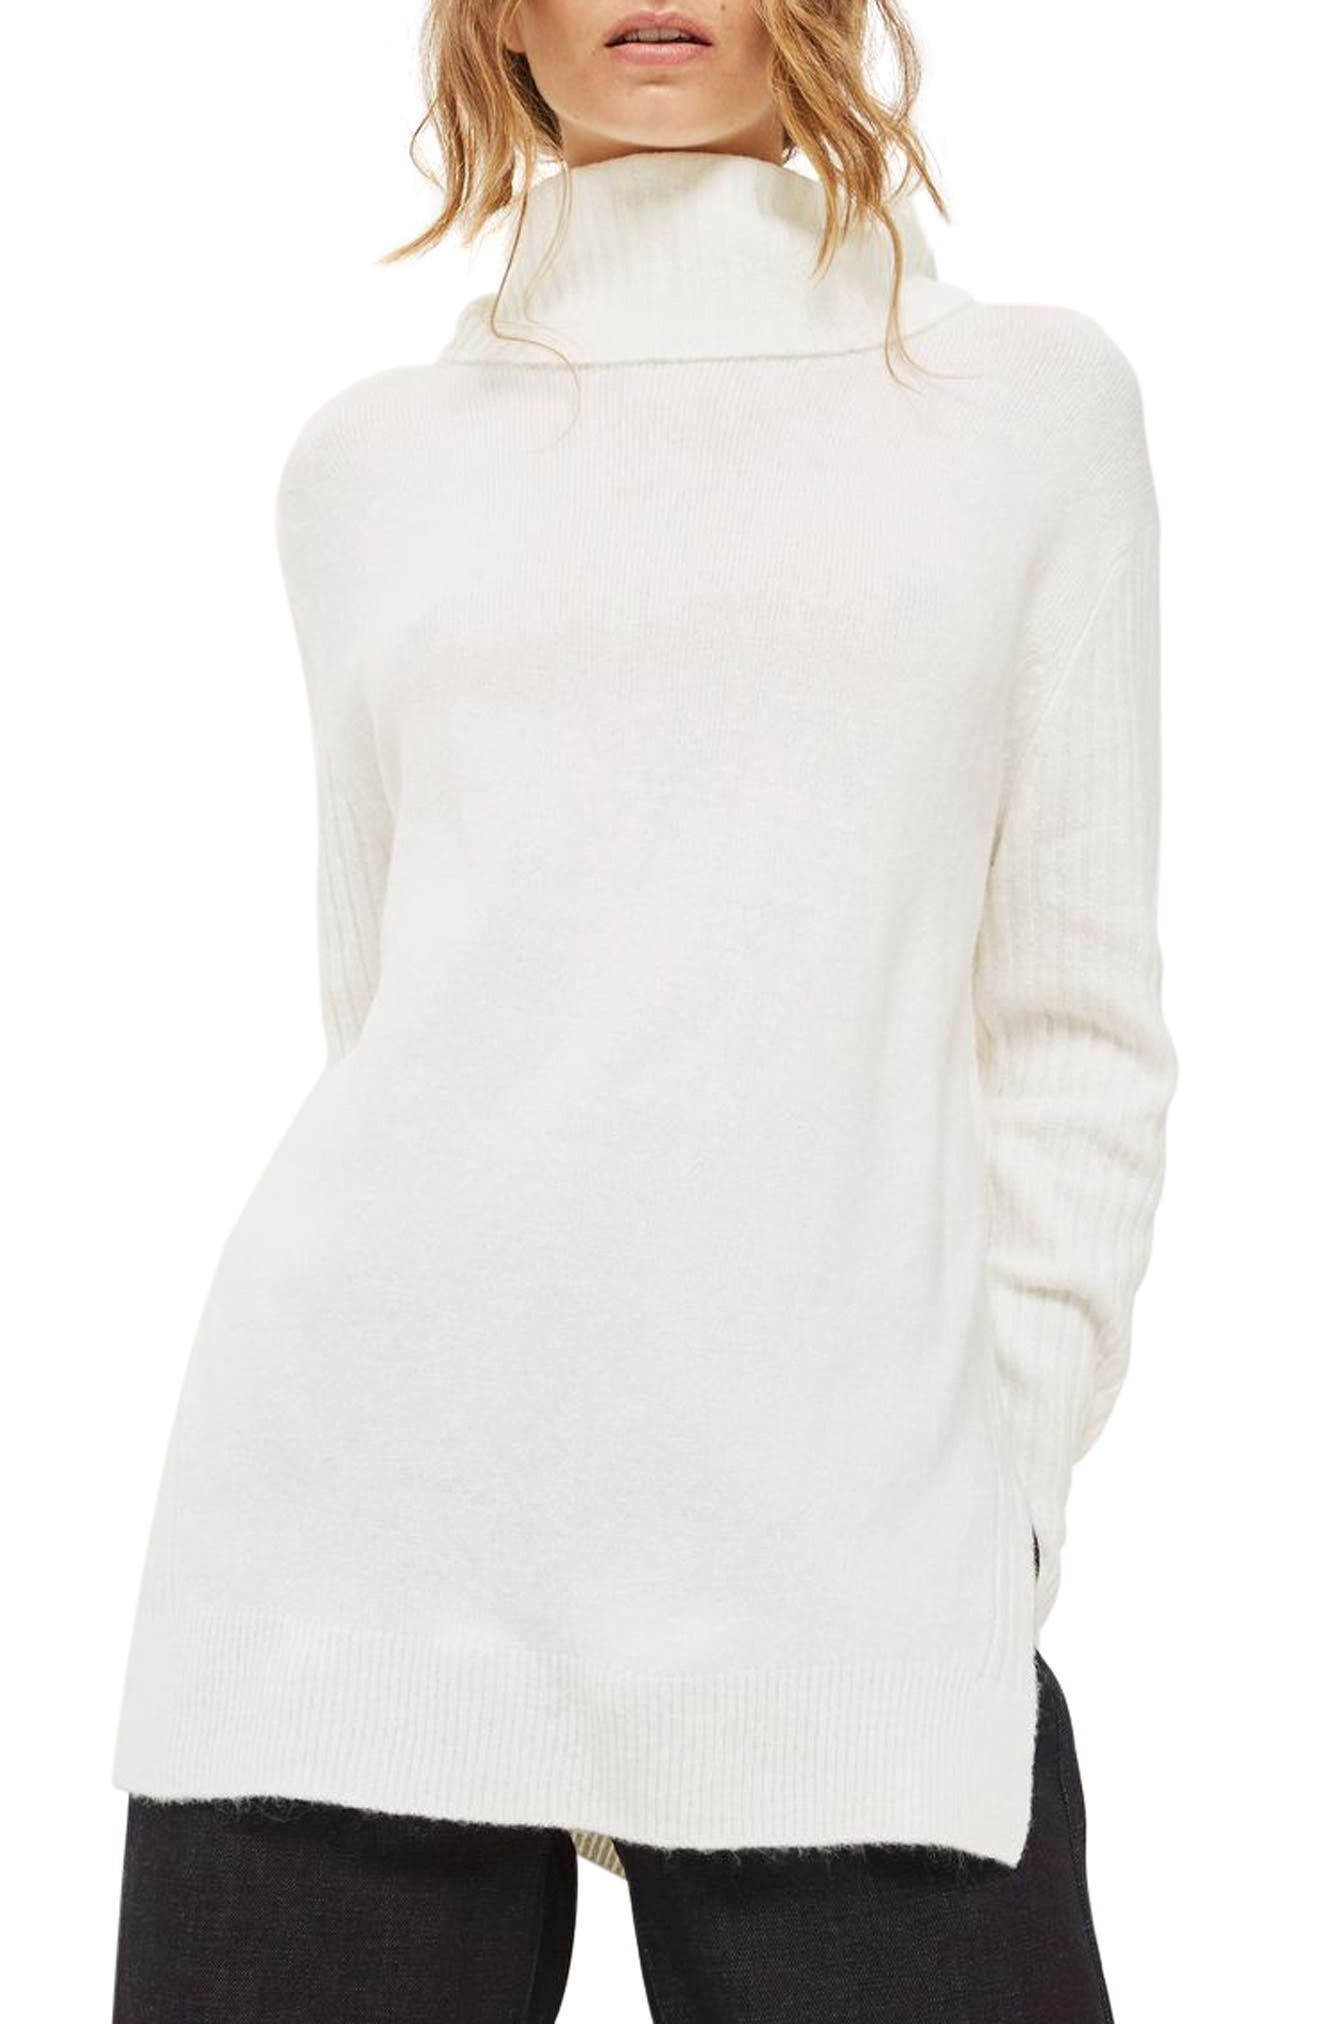 Oversize Turtleneck Sweater,                         Main,                         color, Ivory